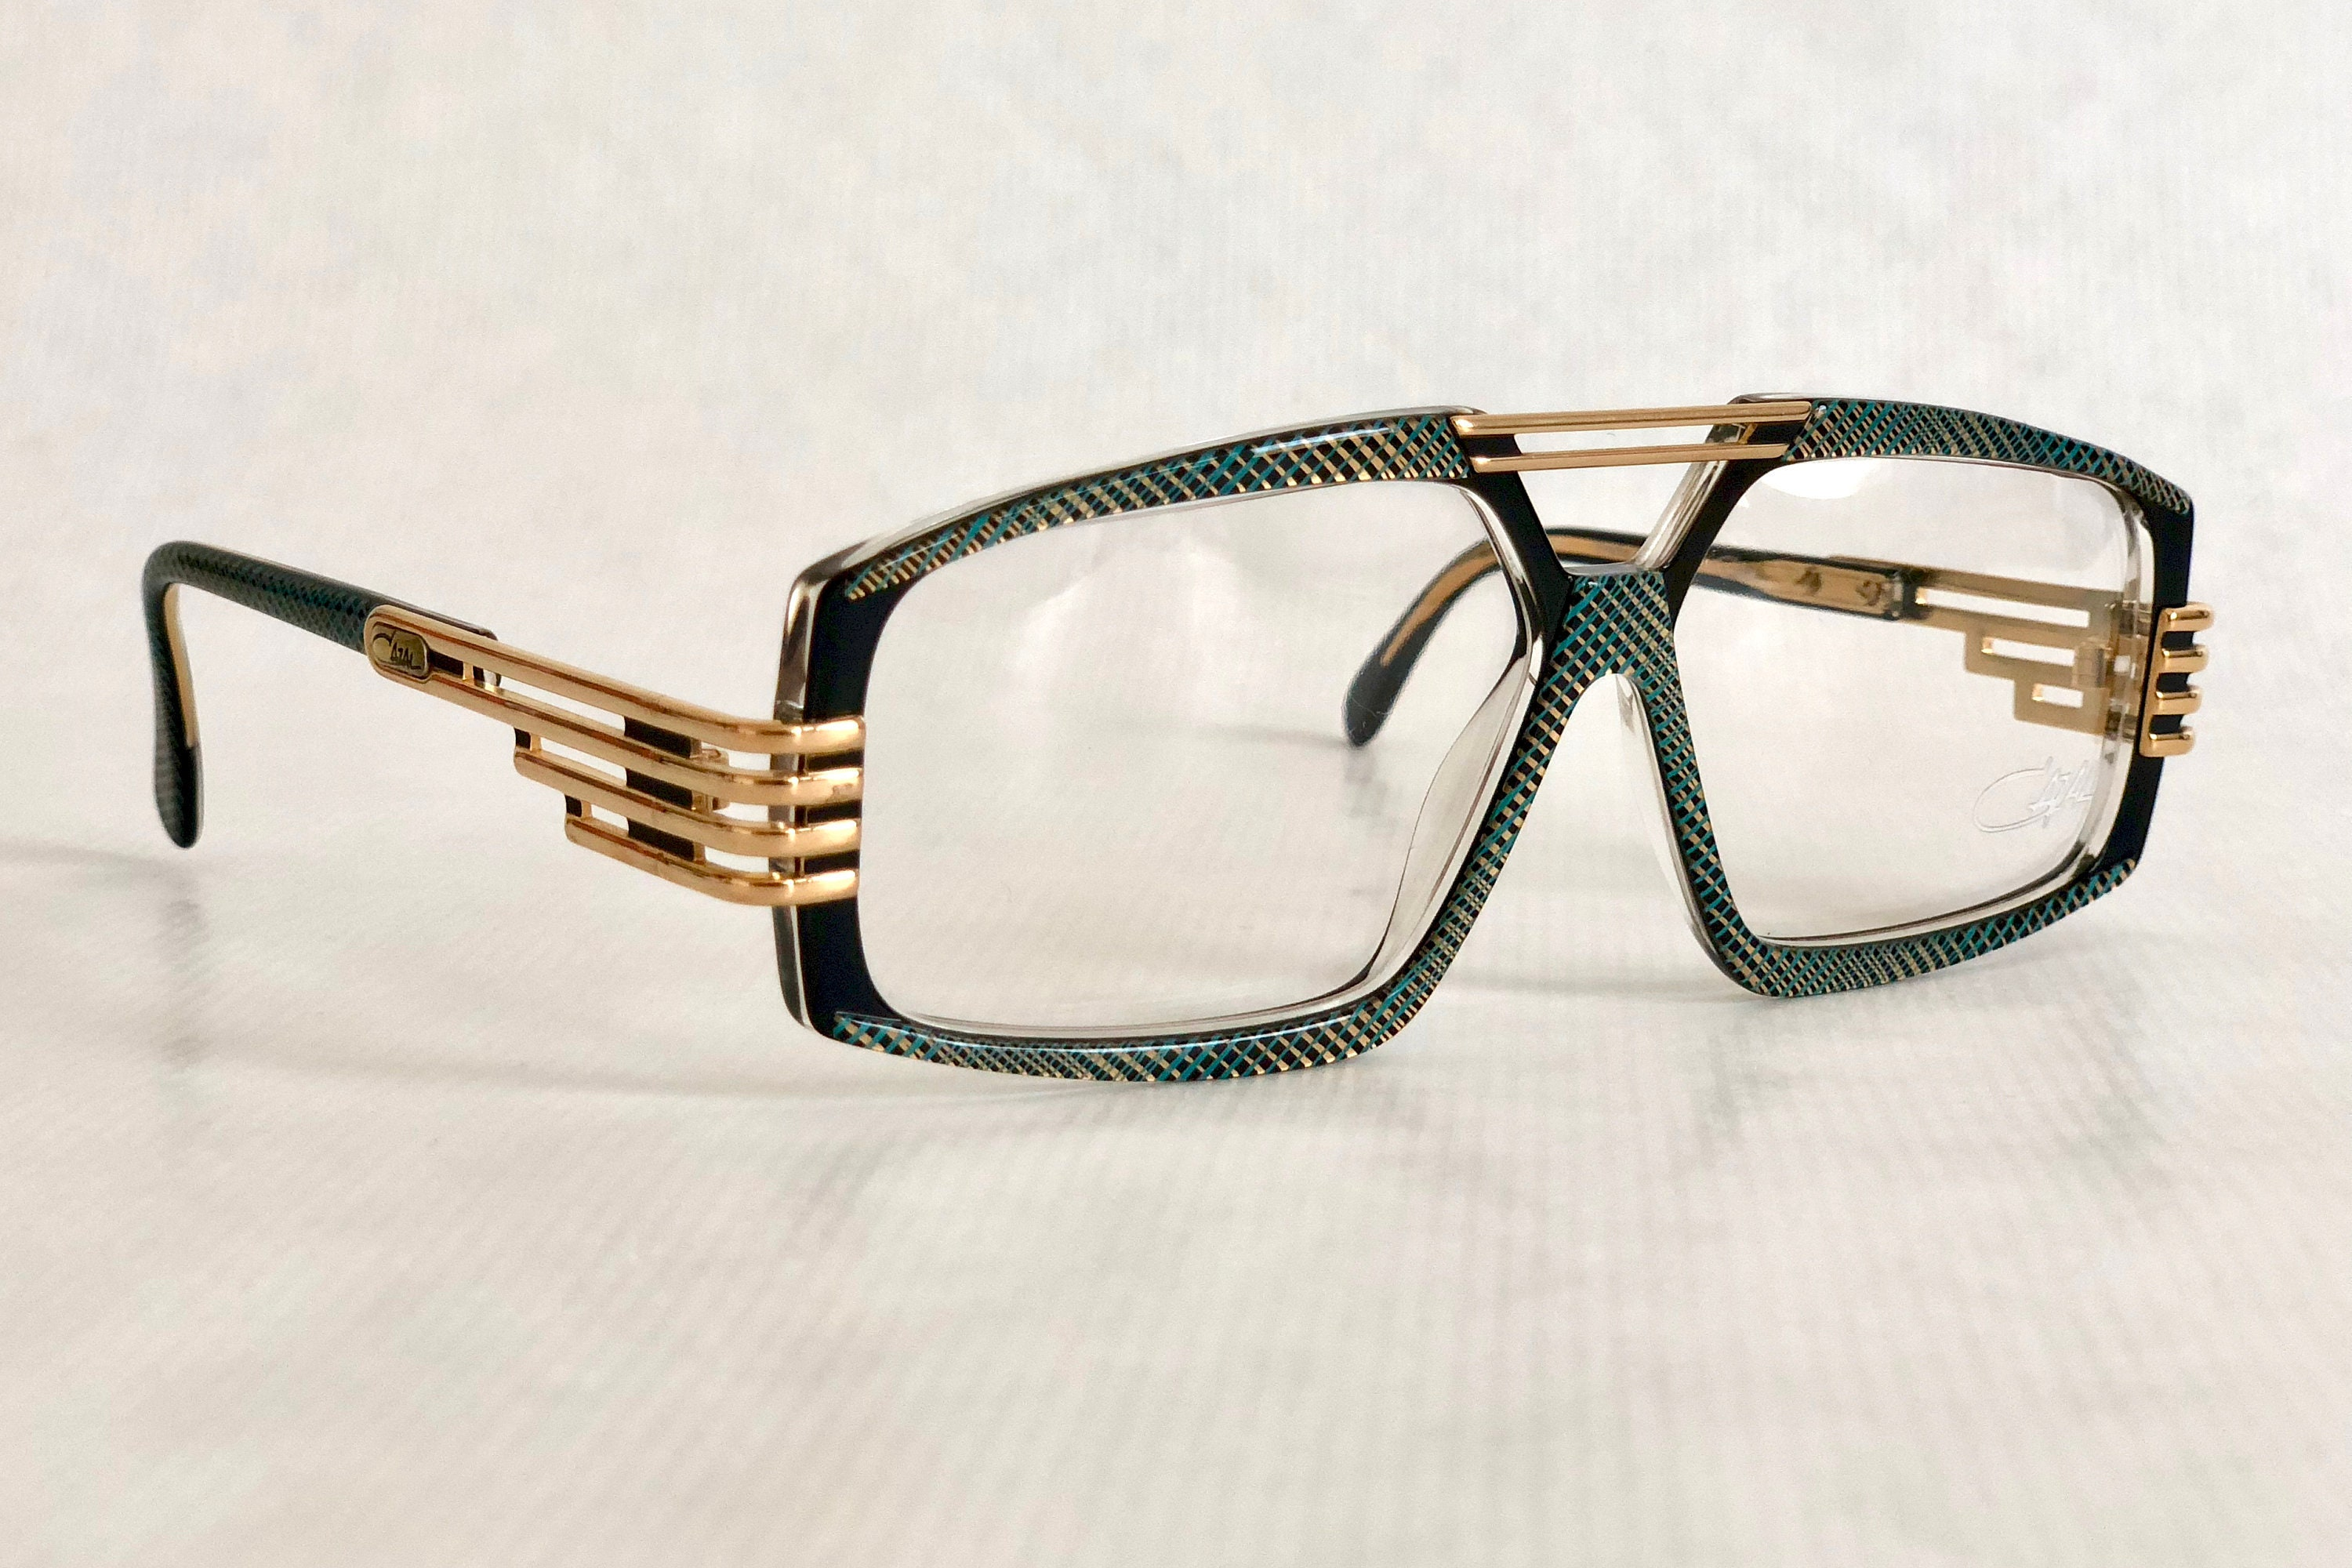 d5ebf9acf5 Cazal 325 Col 673 Vintage Eyeglasses Made in West Germany New ...